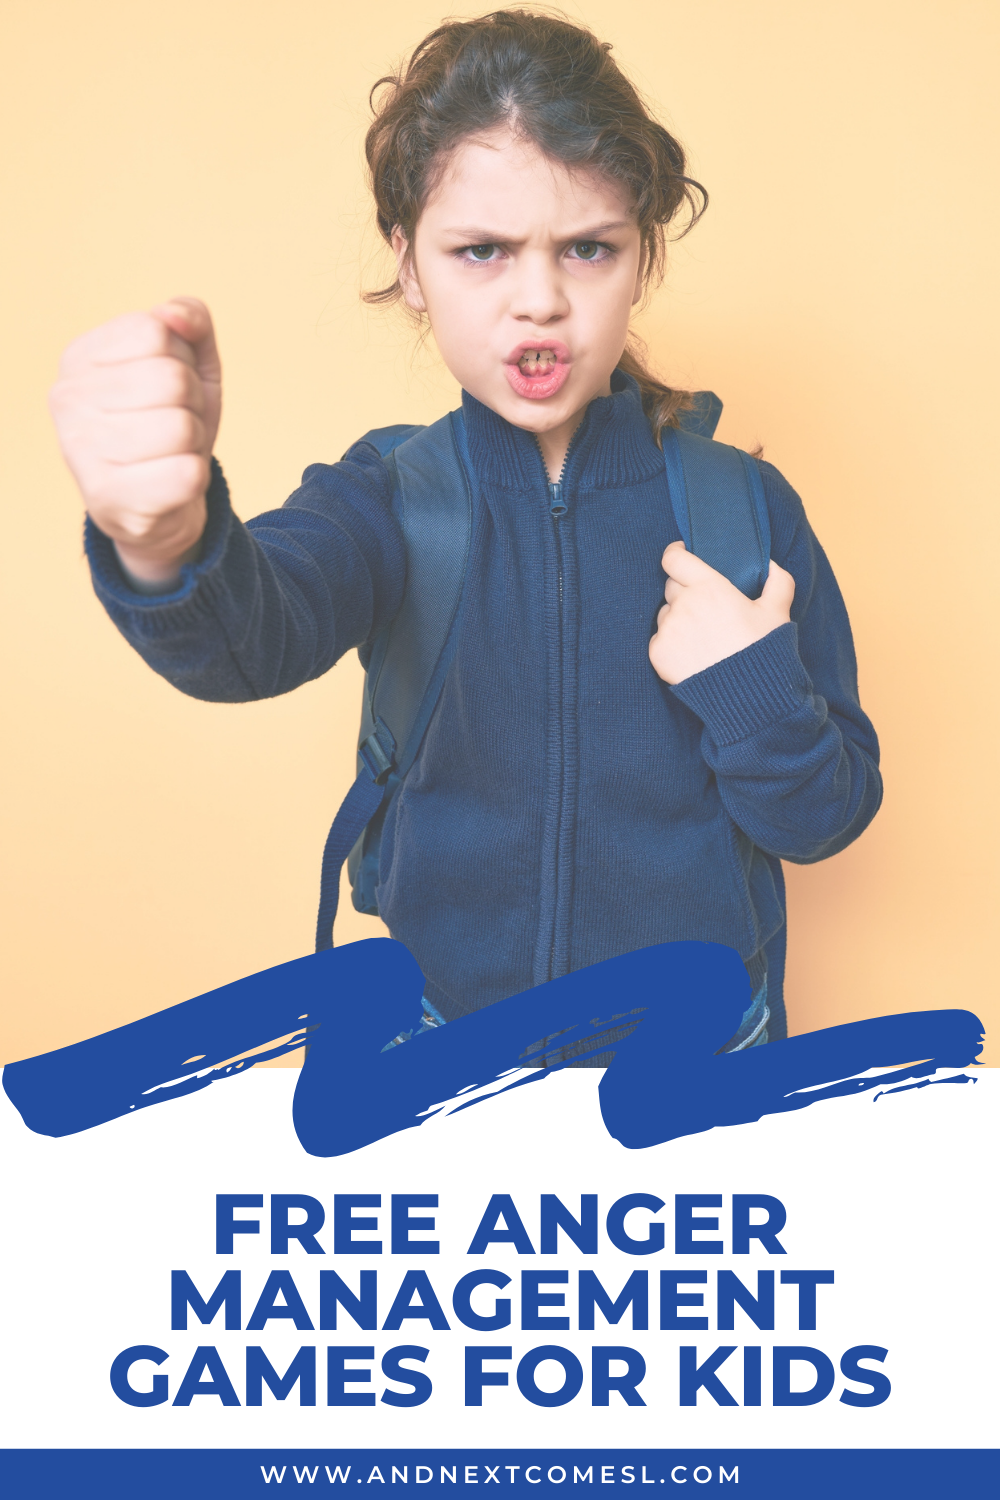 Free anger management games for kids and teens